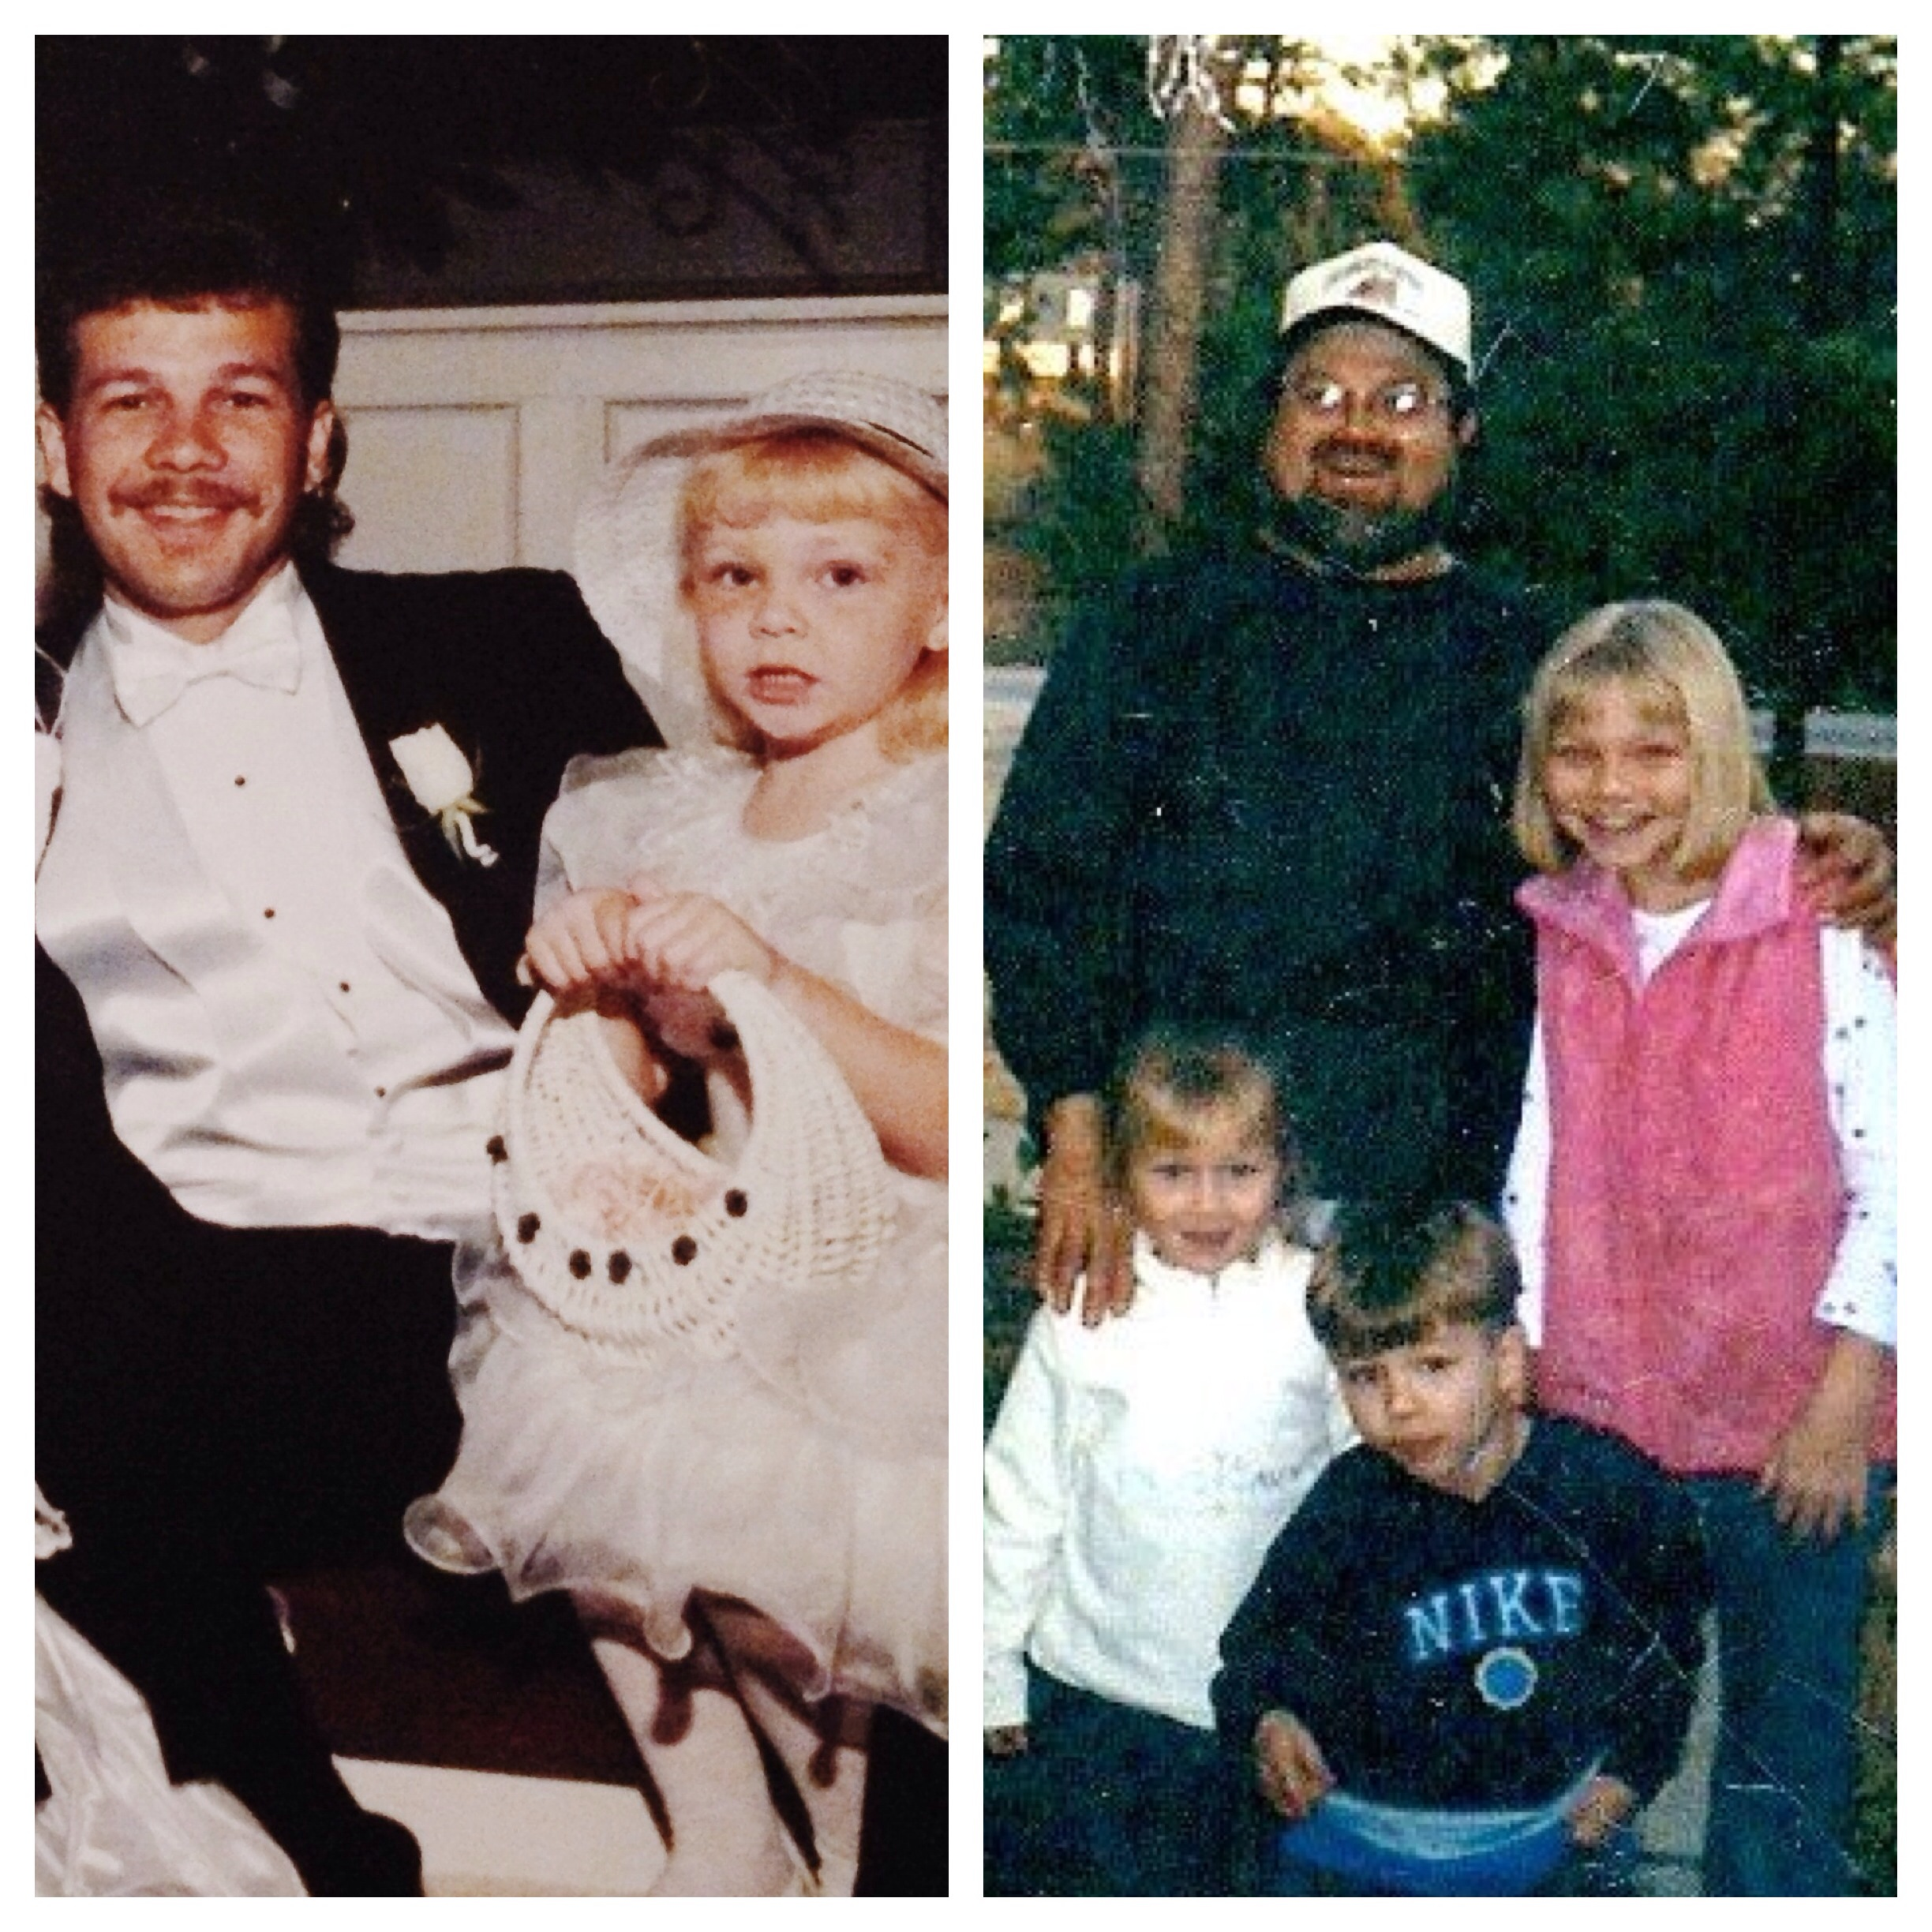 left- Uncle James and me on his wedding day in 1995.   right- Uncle Jimmy, me, Taylor & Hunter on a day circa 2000 when Uncle Jimmy came over to see us and use the last few shots on his roll of film on us.